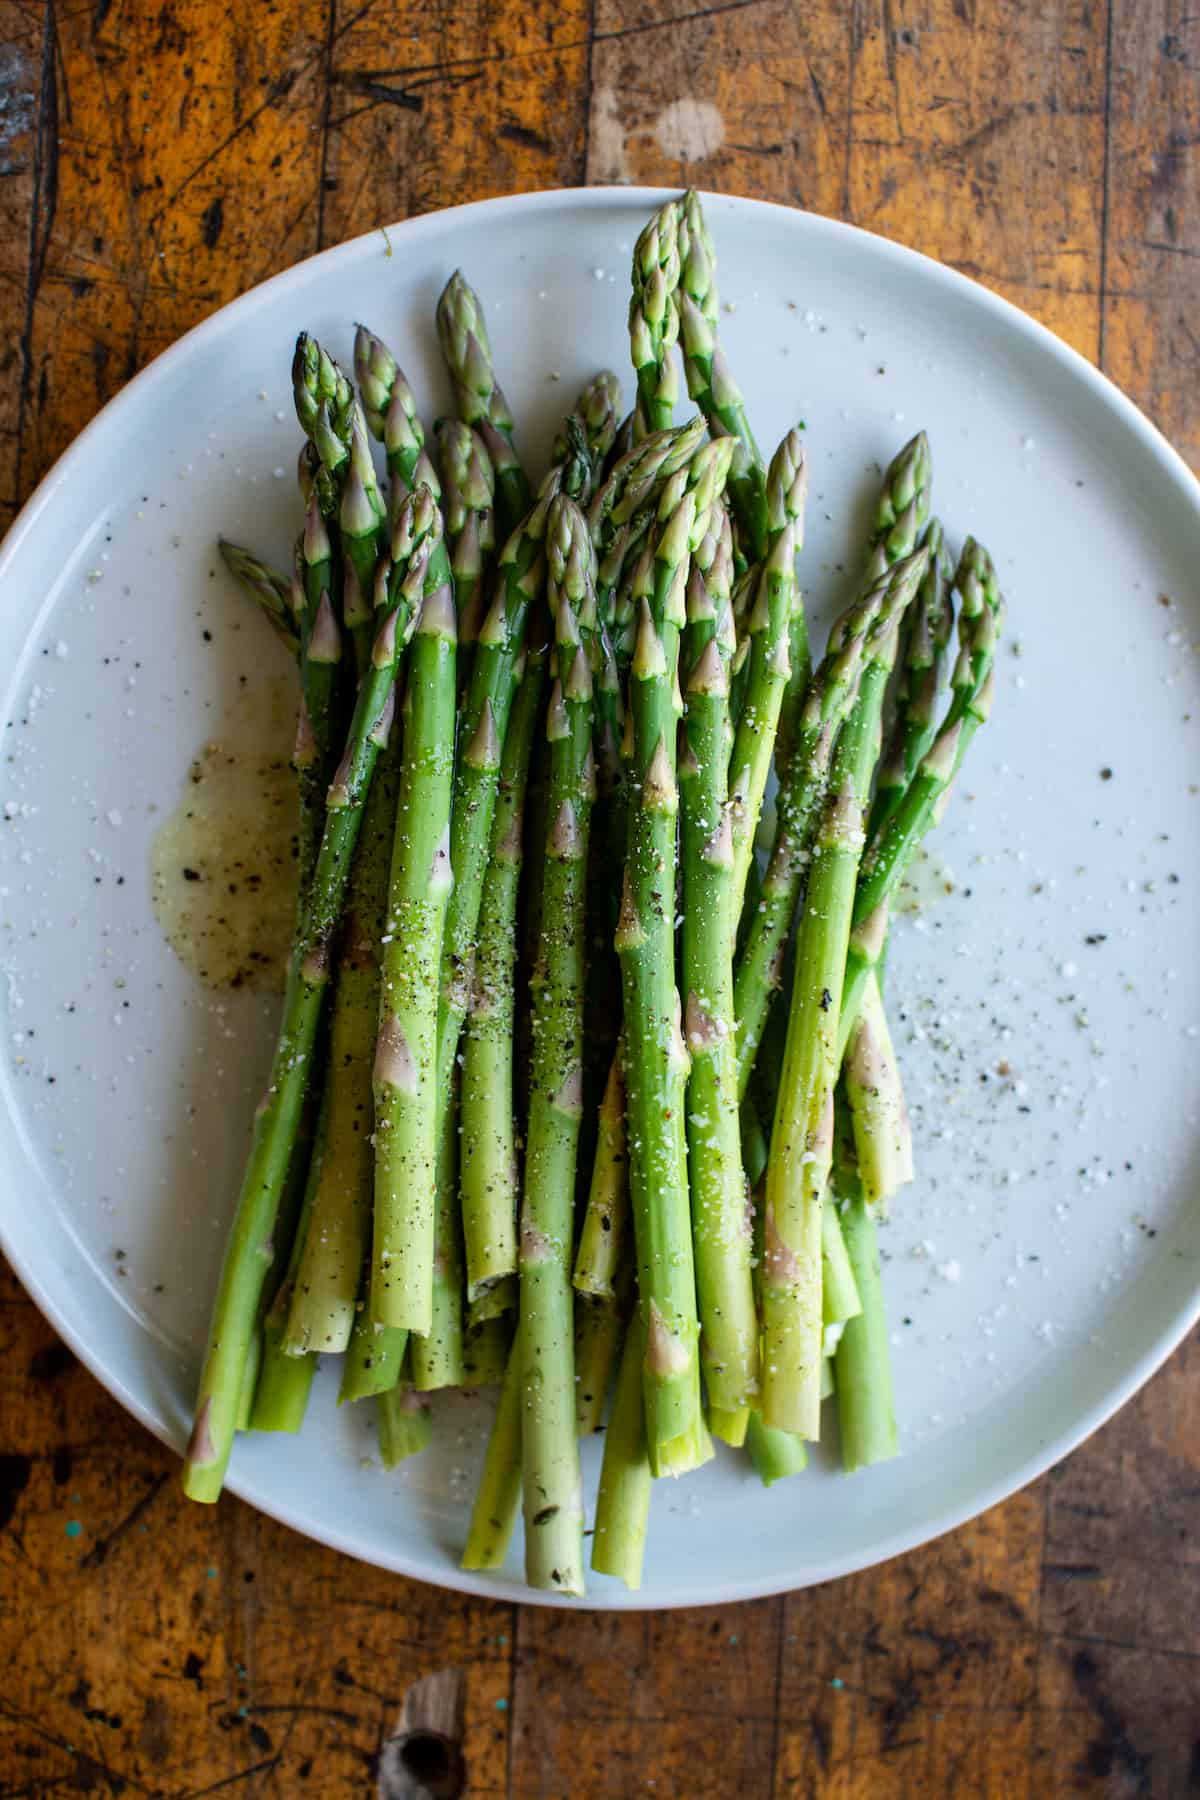 A white plate with raw asparagus on it that has been tossed in olive oil, salt, and pepper.